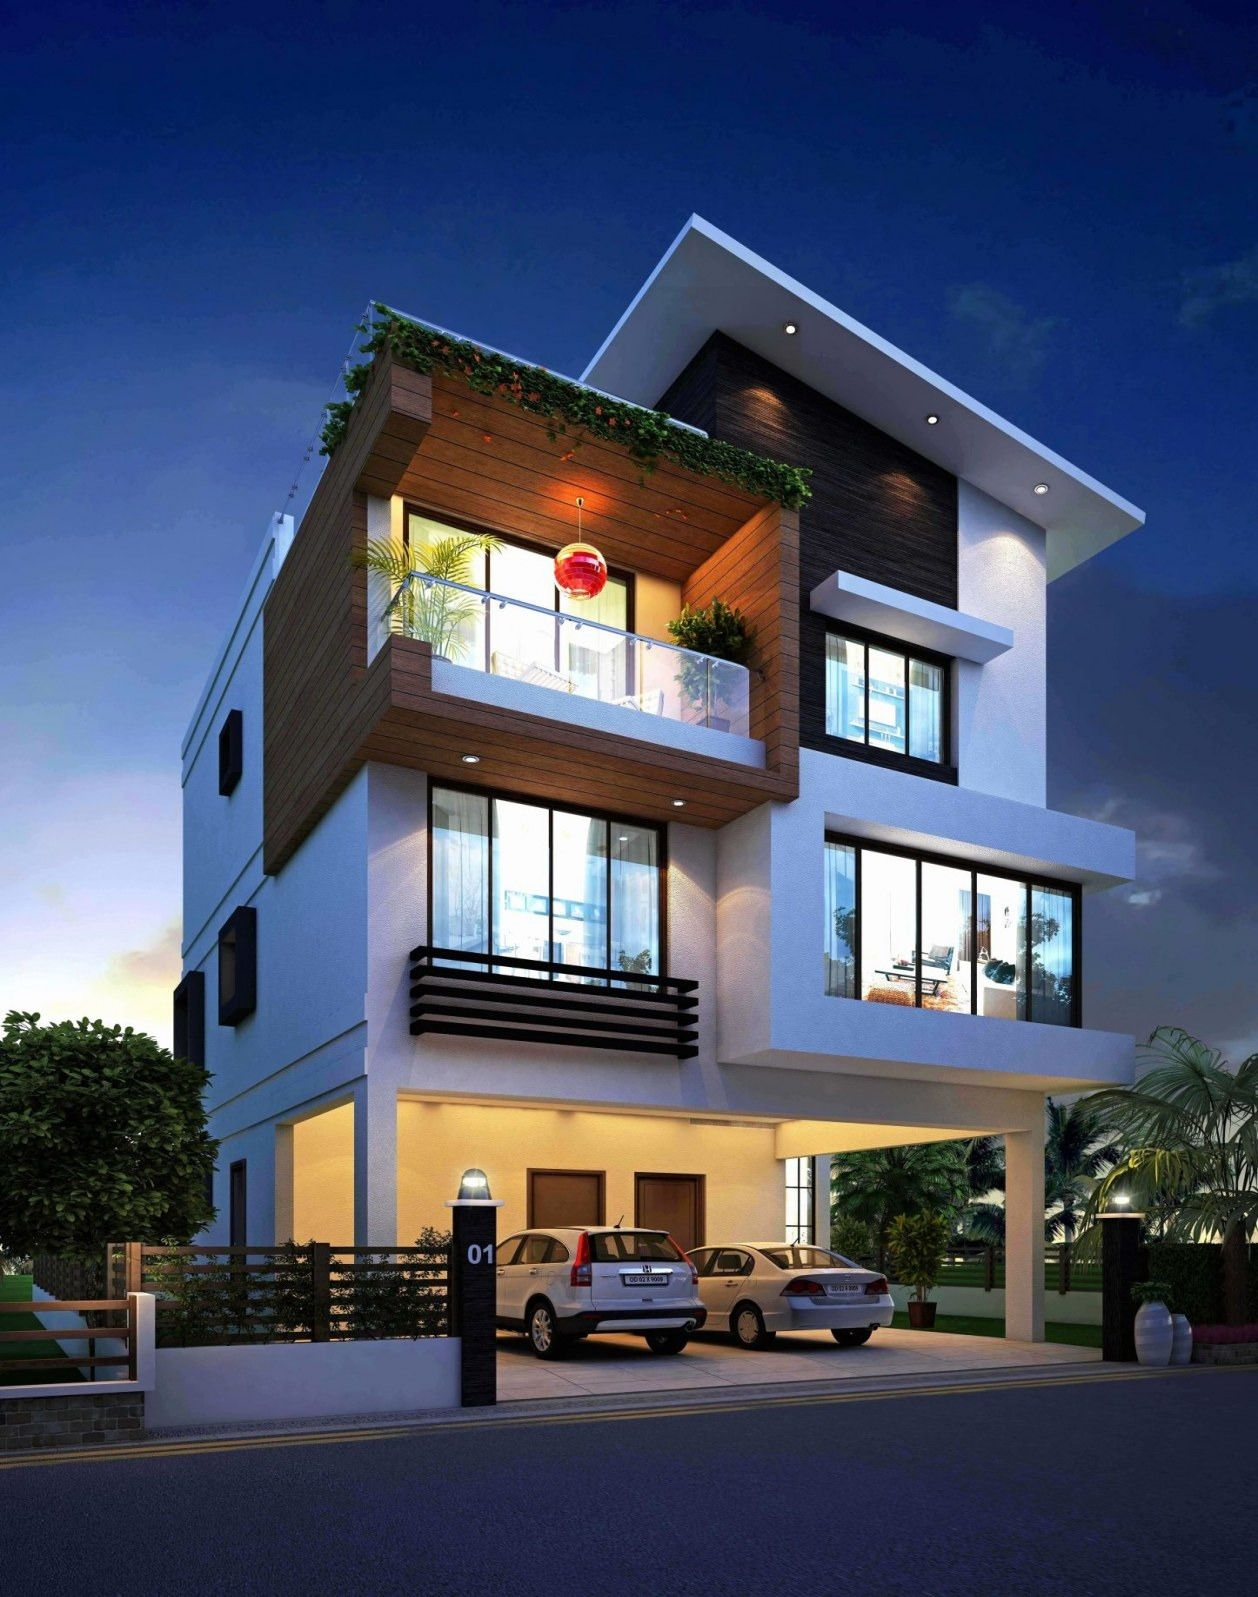 23d9610cecea4b a1630cfe858f7 on Modern House Designs Pictures Gallery id=1005761